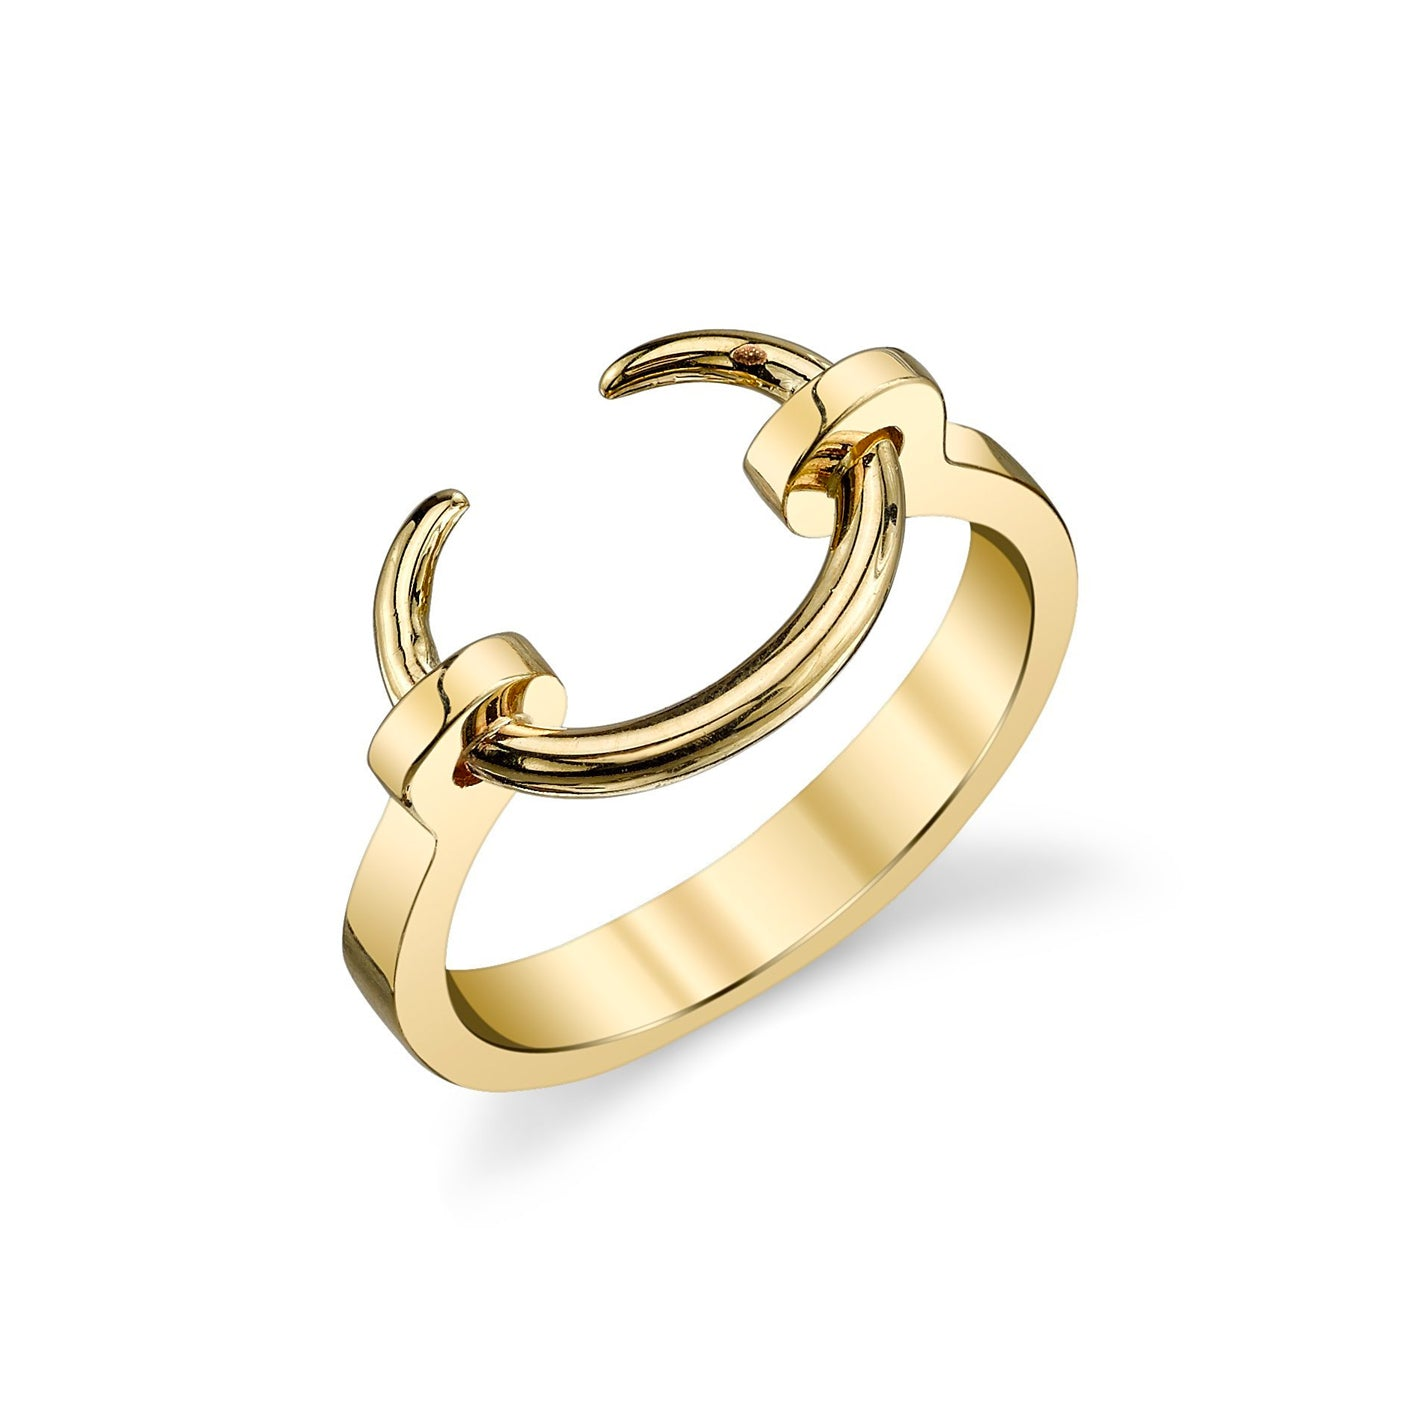 Reloaded Infinite Tusk Ring - Gabriela Artigas